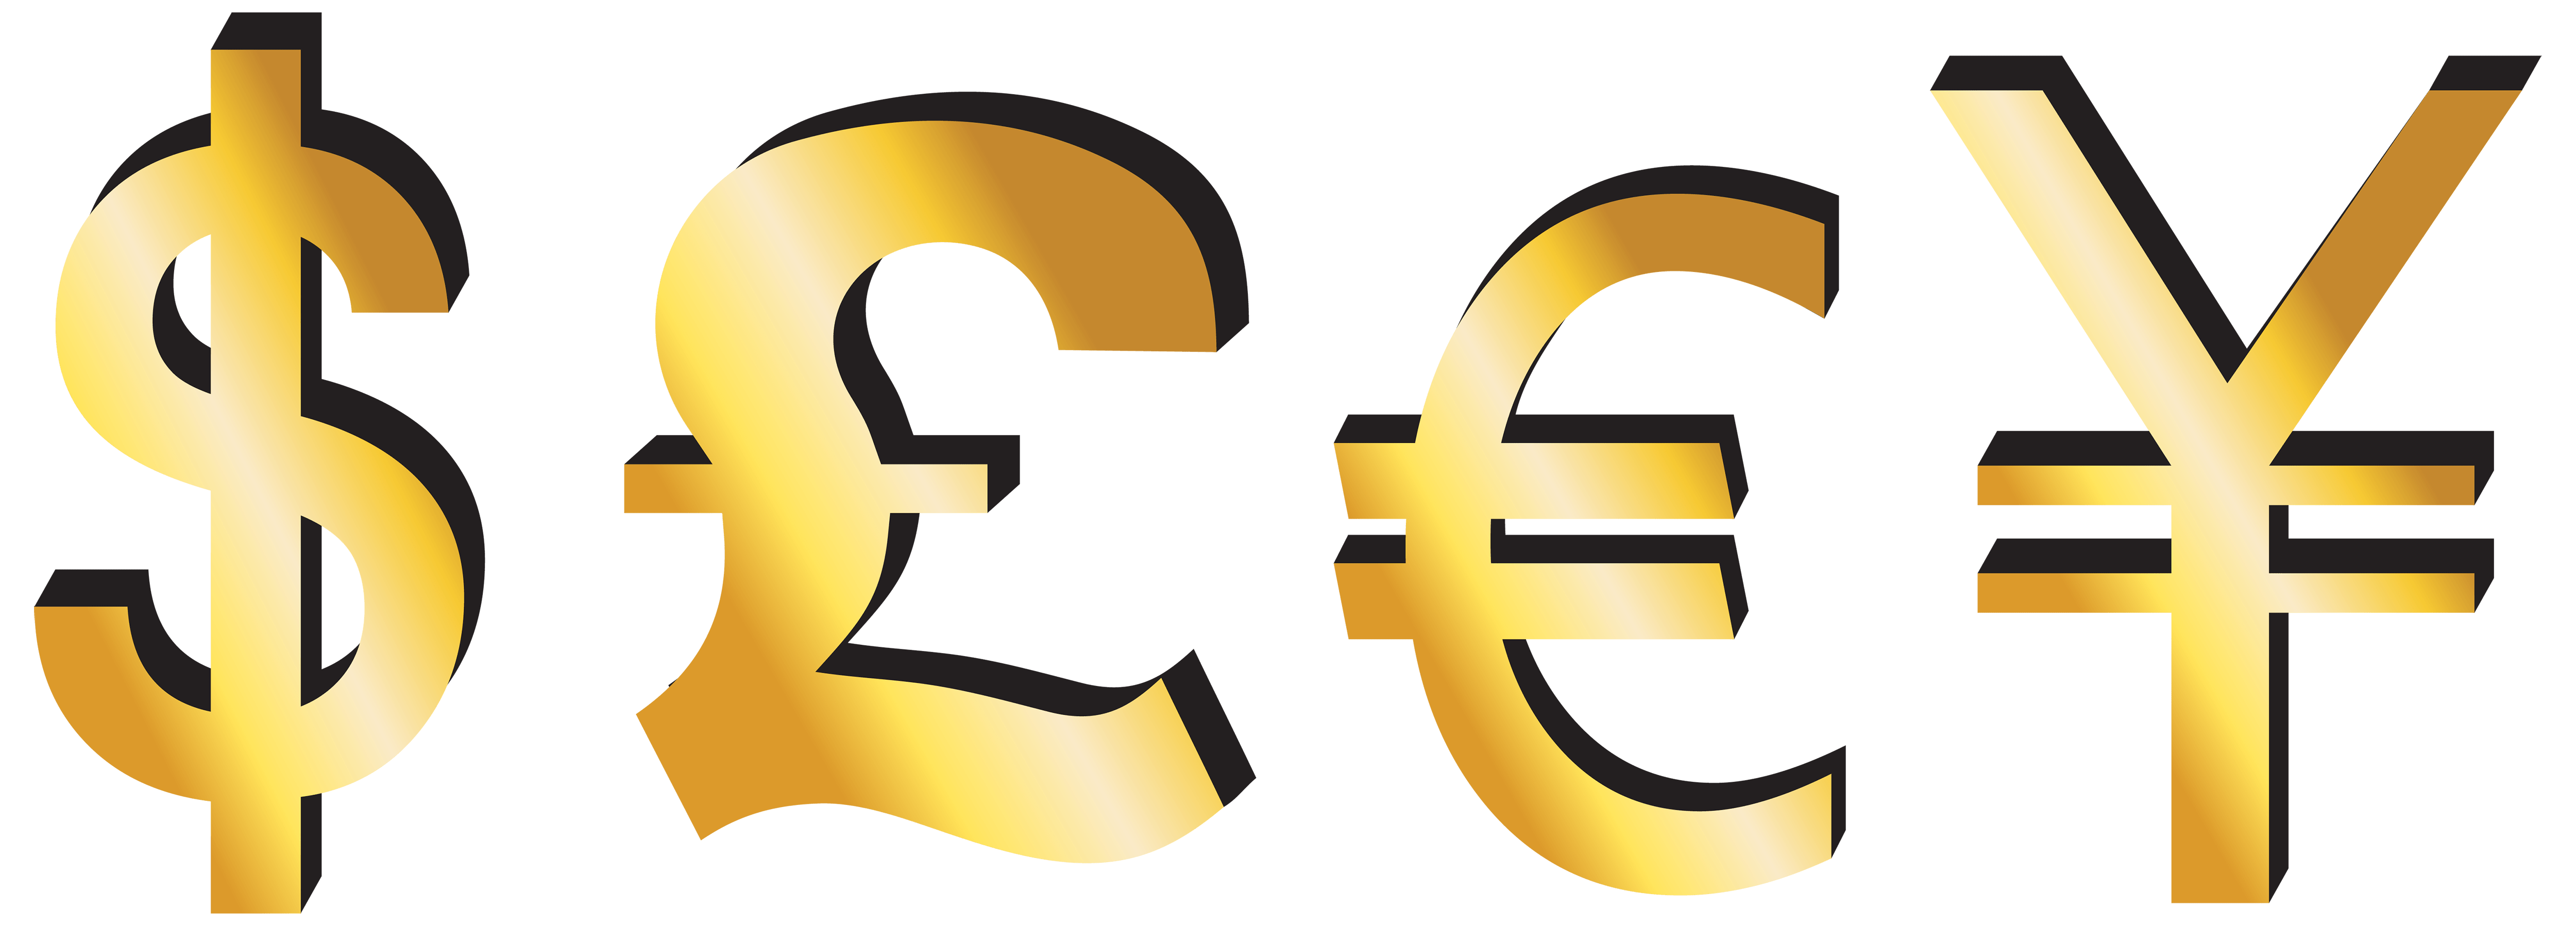 Dollar_Pound_Euro_Yen_Signs_PNG_Clipart-657